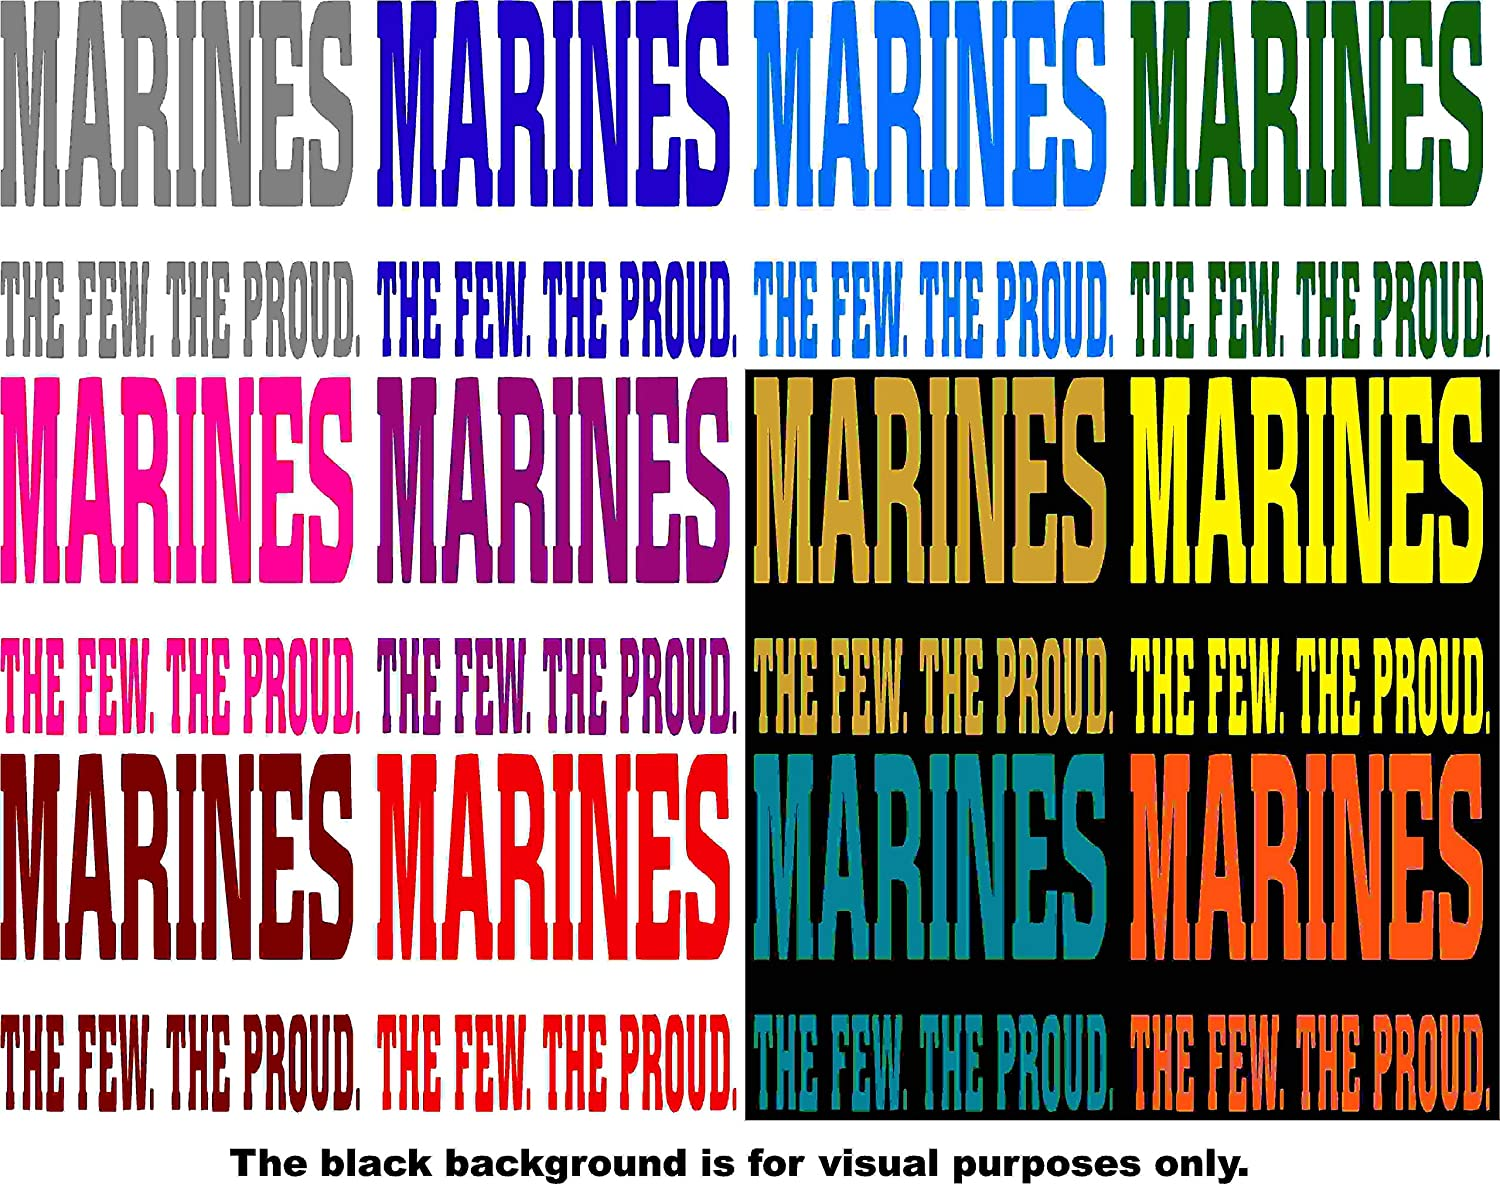 Marines The Few The Proud Car Window Tumblers Wall Decal Sticker Vinyl Laptops Cellphones Phones Tablets Ipads Helmets Motorcycles Computer Towers V and T Gifts